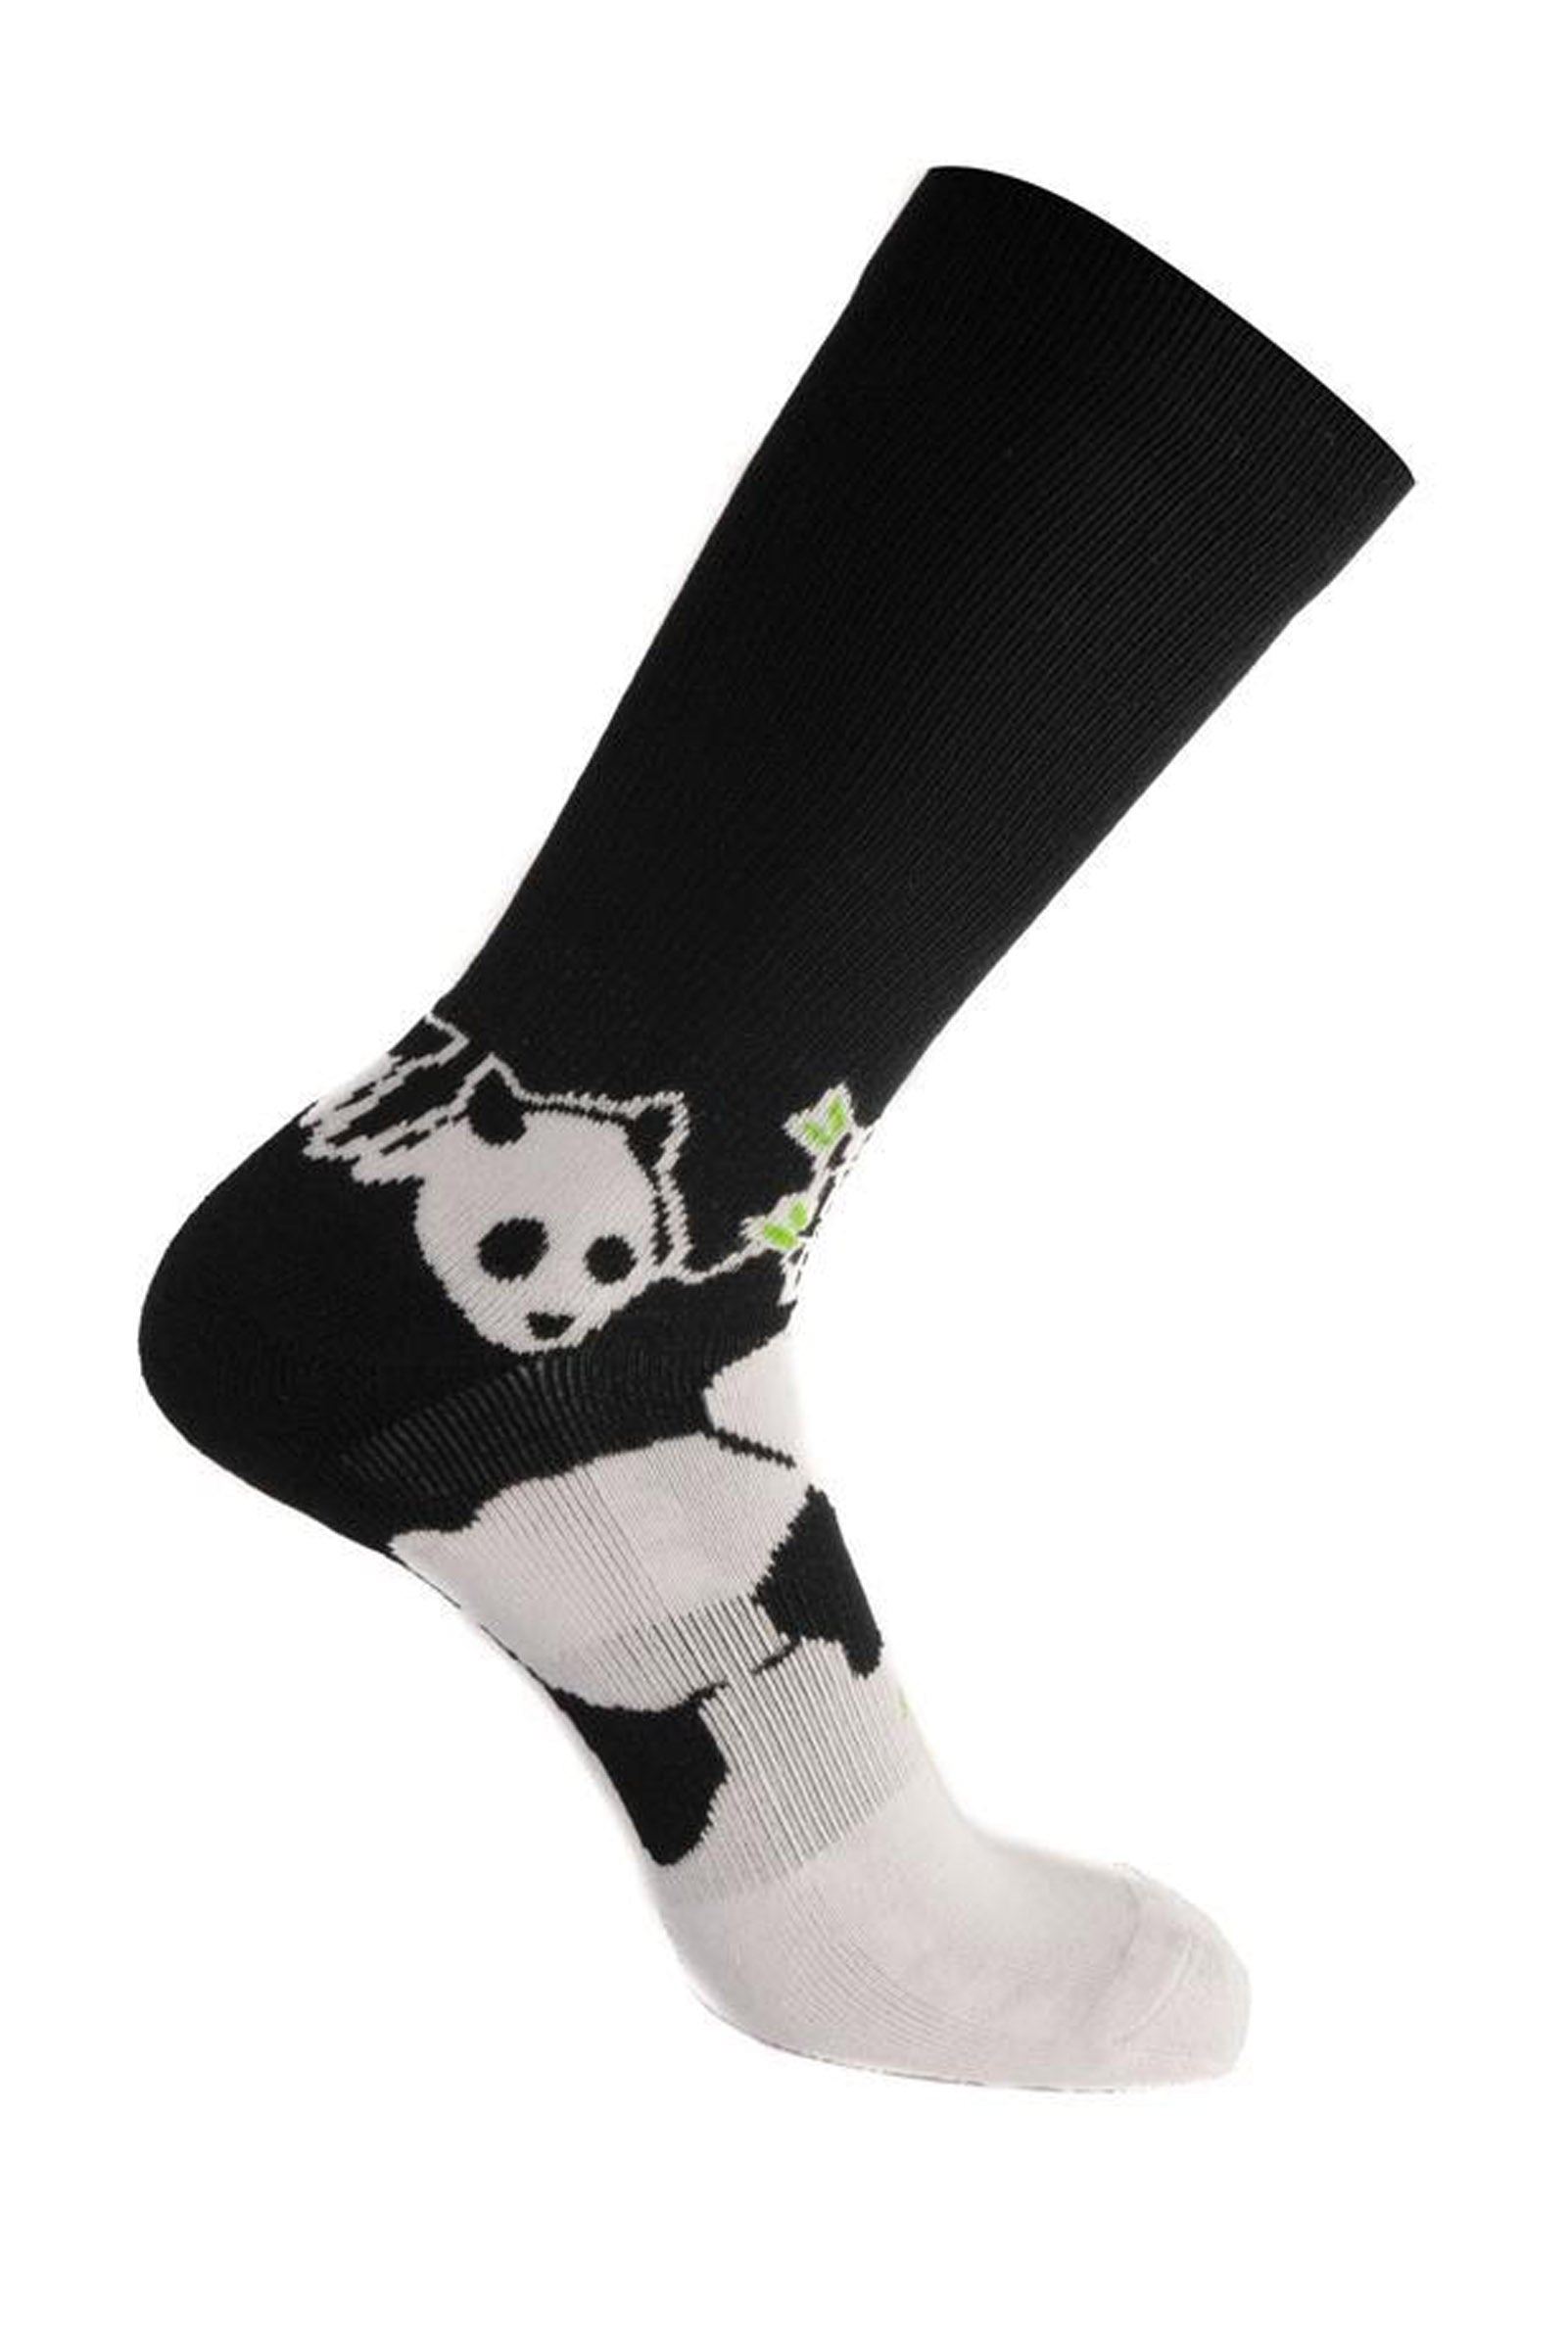 EVENINGPANDASOCKS